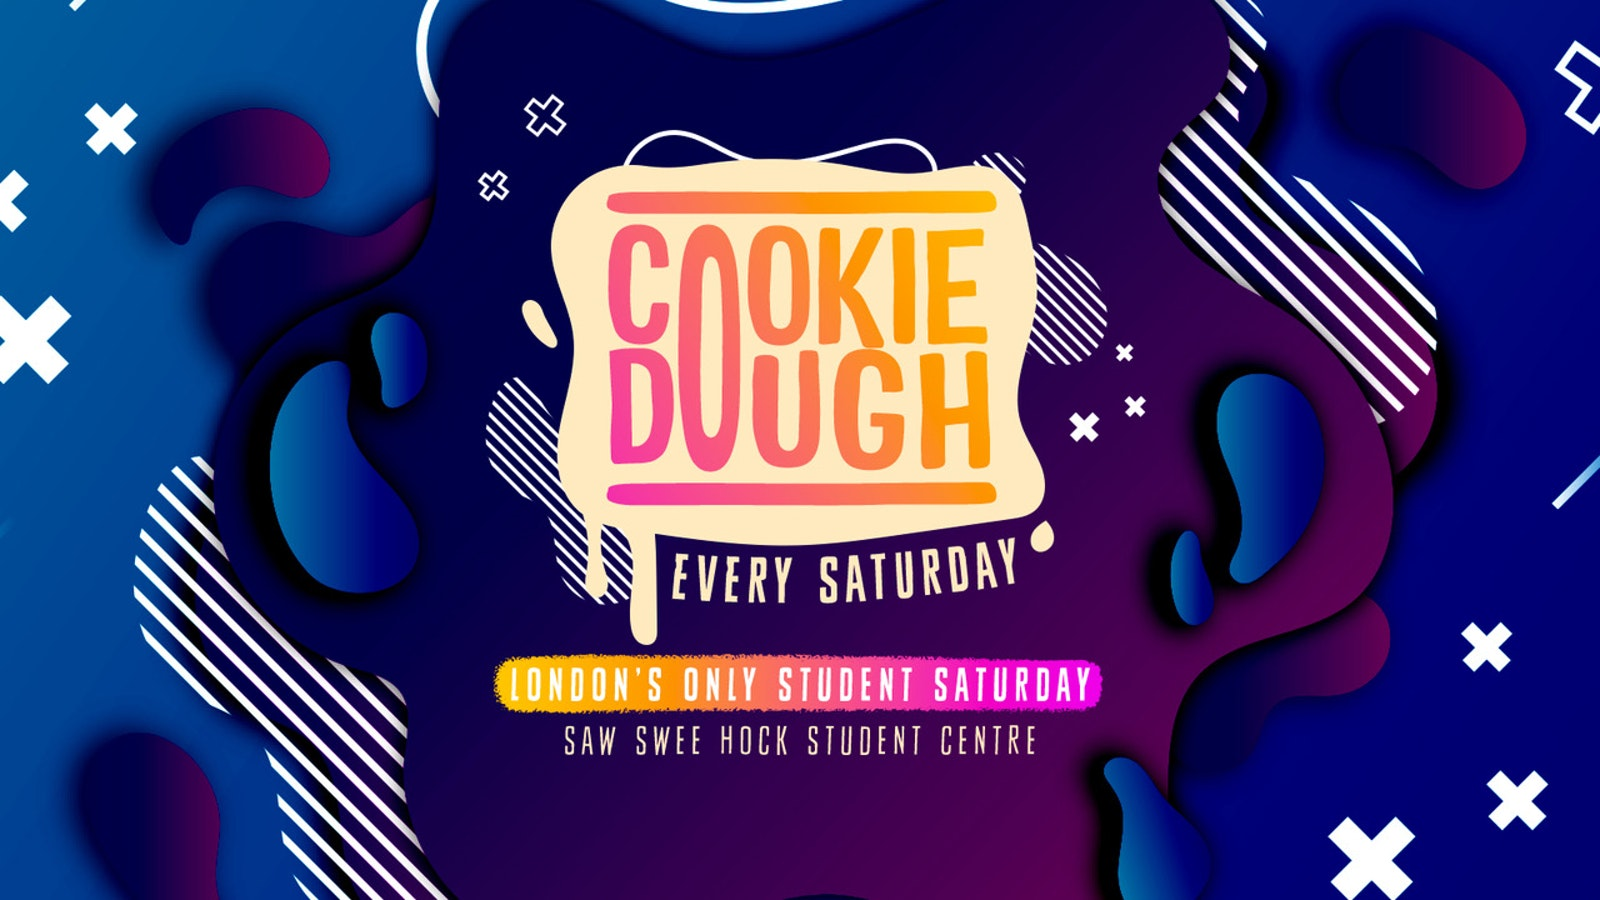 Cookie Dough / Every Saturday / 07.12